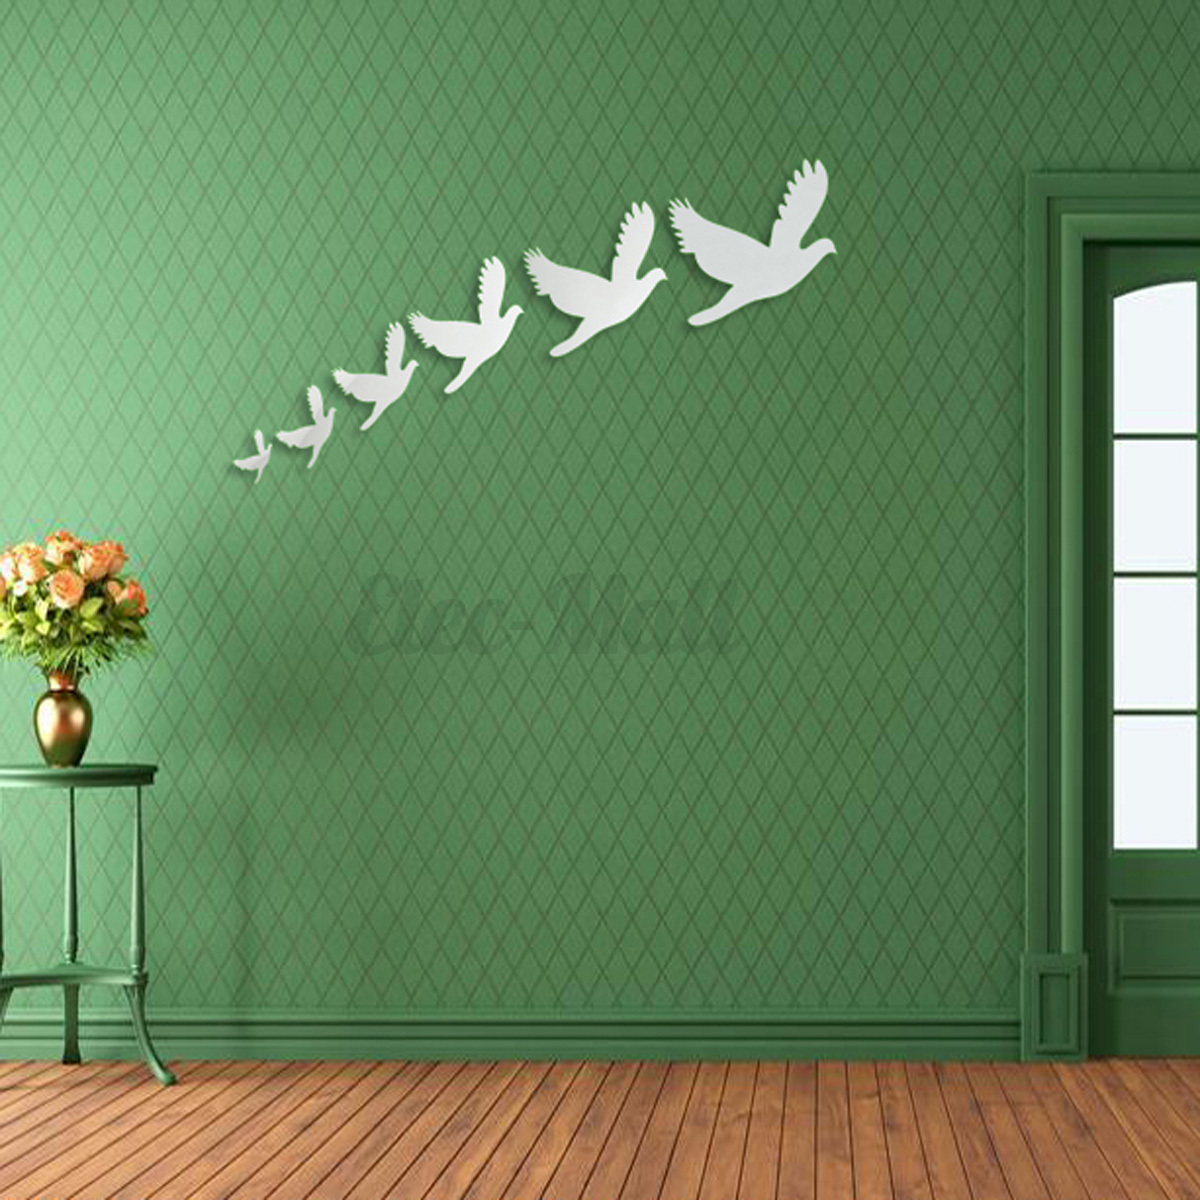 Removable diy 3d mirror surface wall stickers mural art for Diy wall photo mural